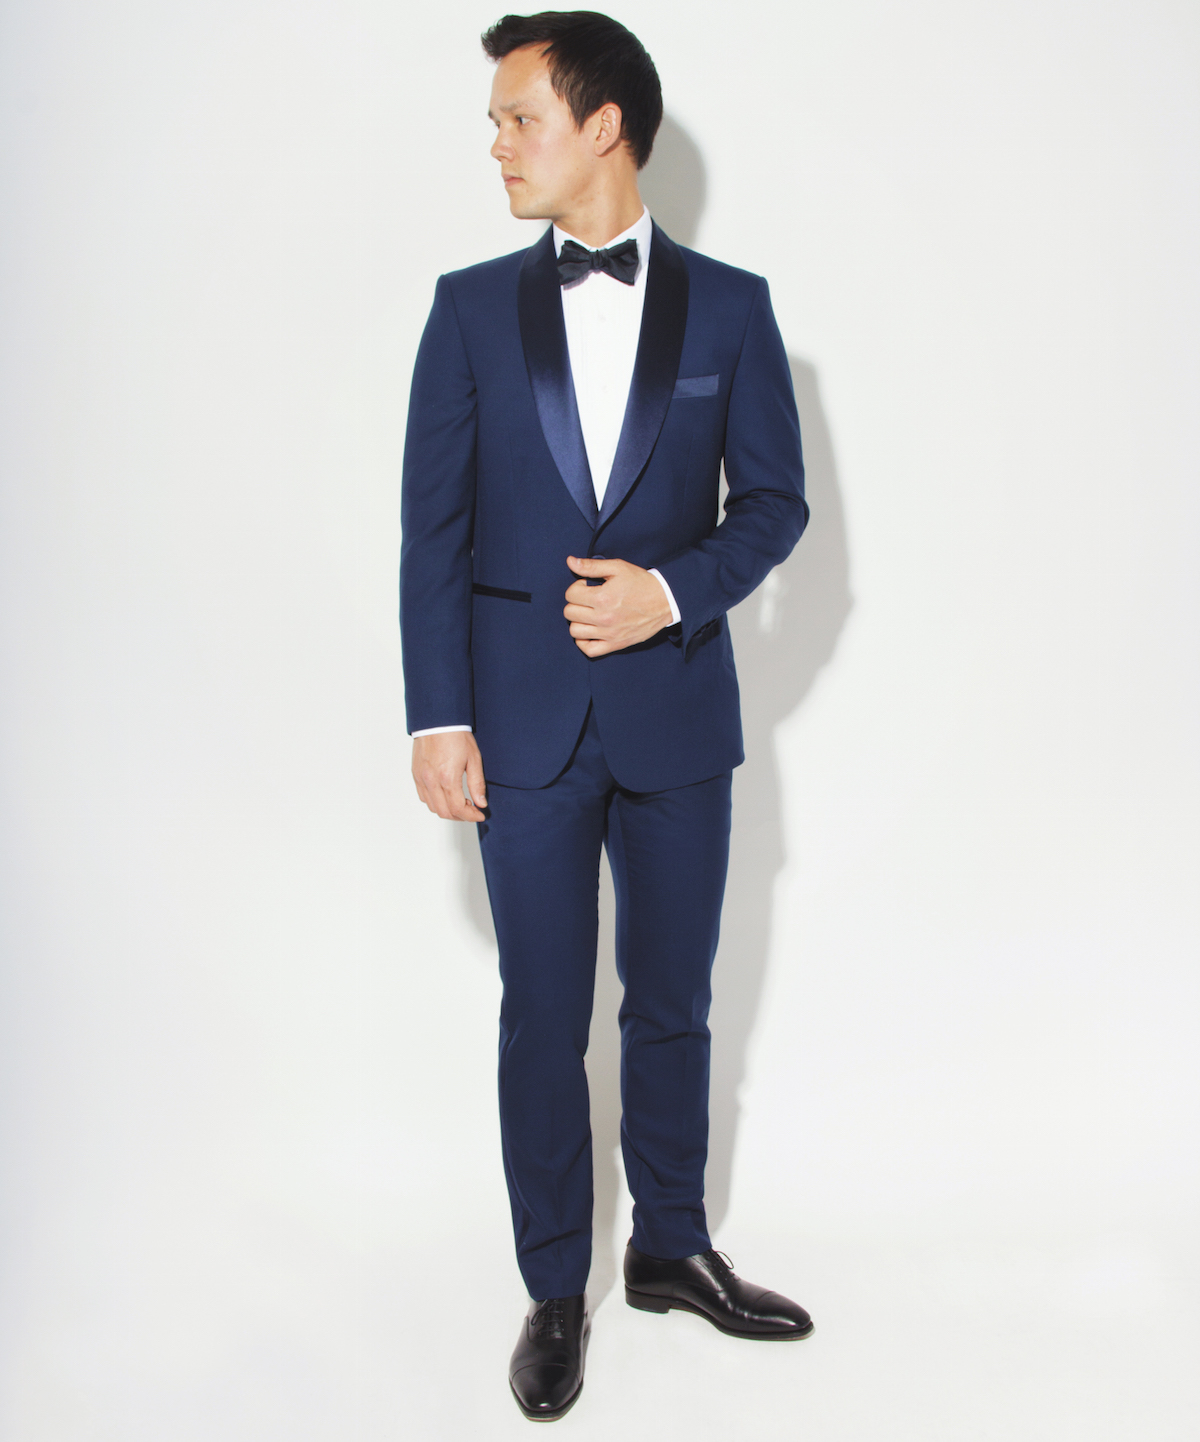 Blank Label S New Navy Blue Shawl Tuxedo